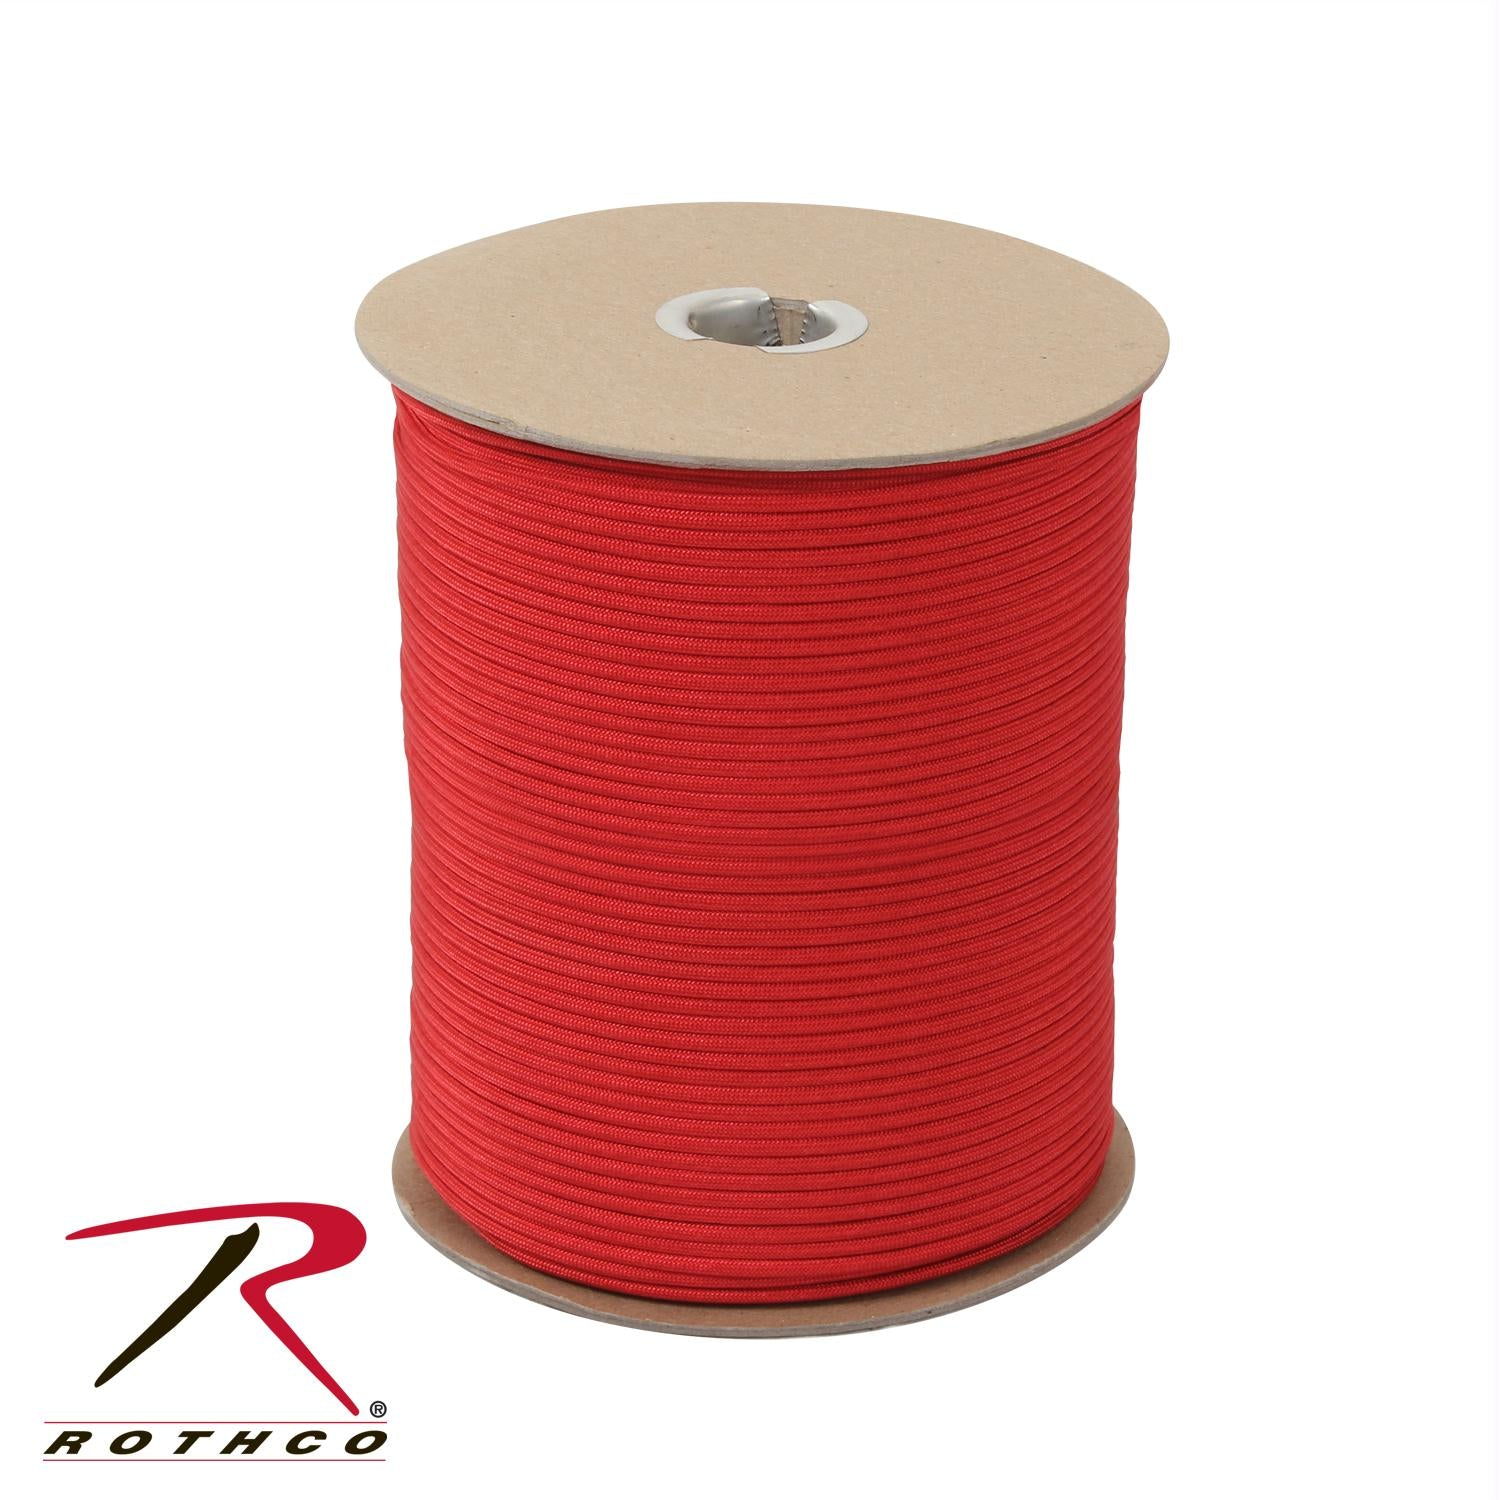 Rothco Nylon Paracord 550lb 1000 Ft Spool - Red